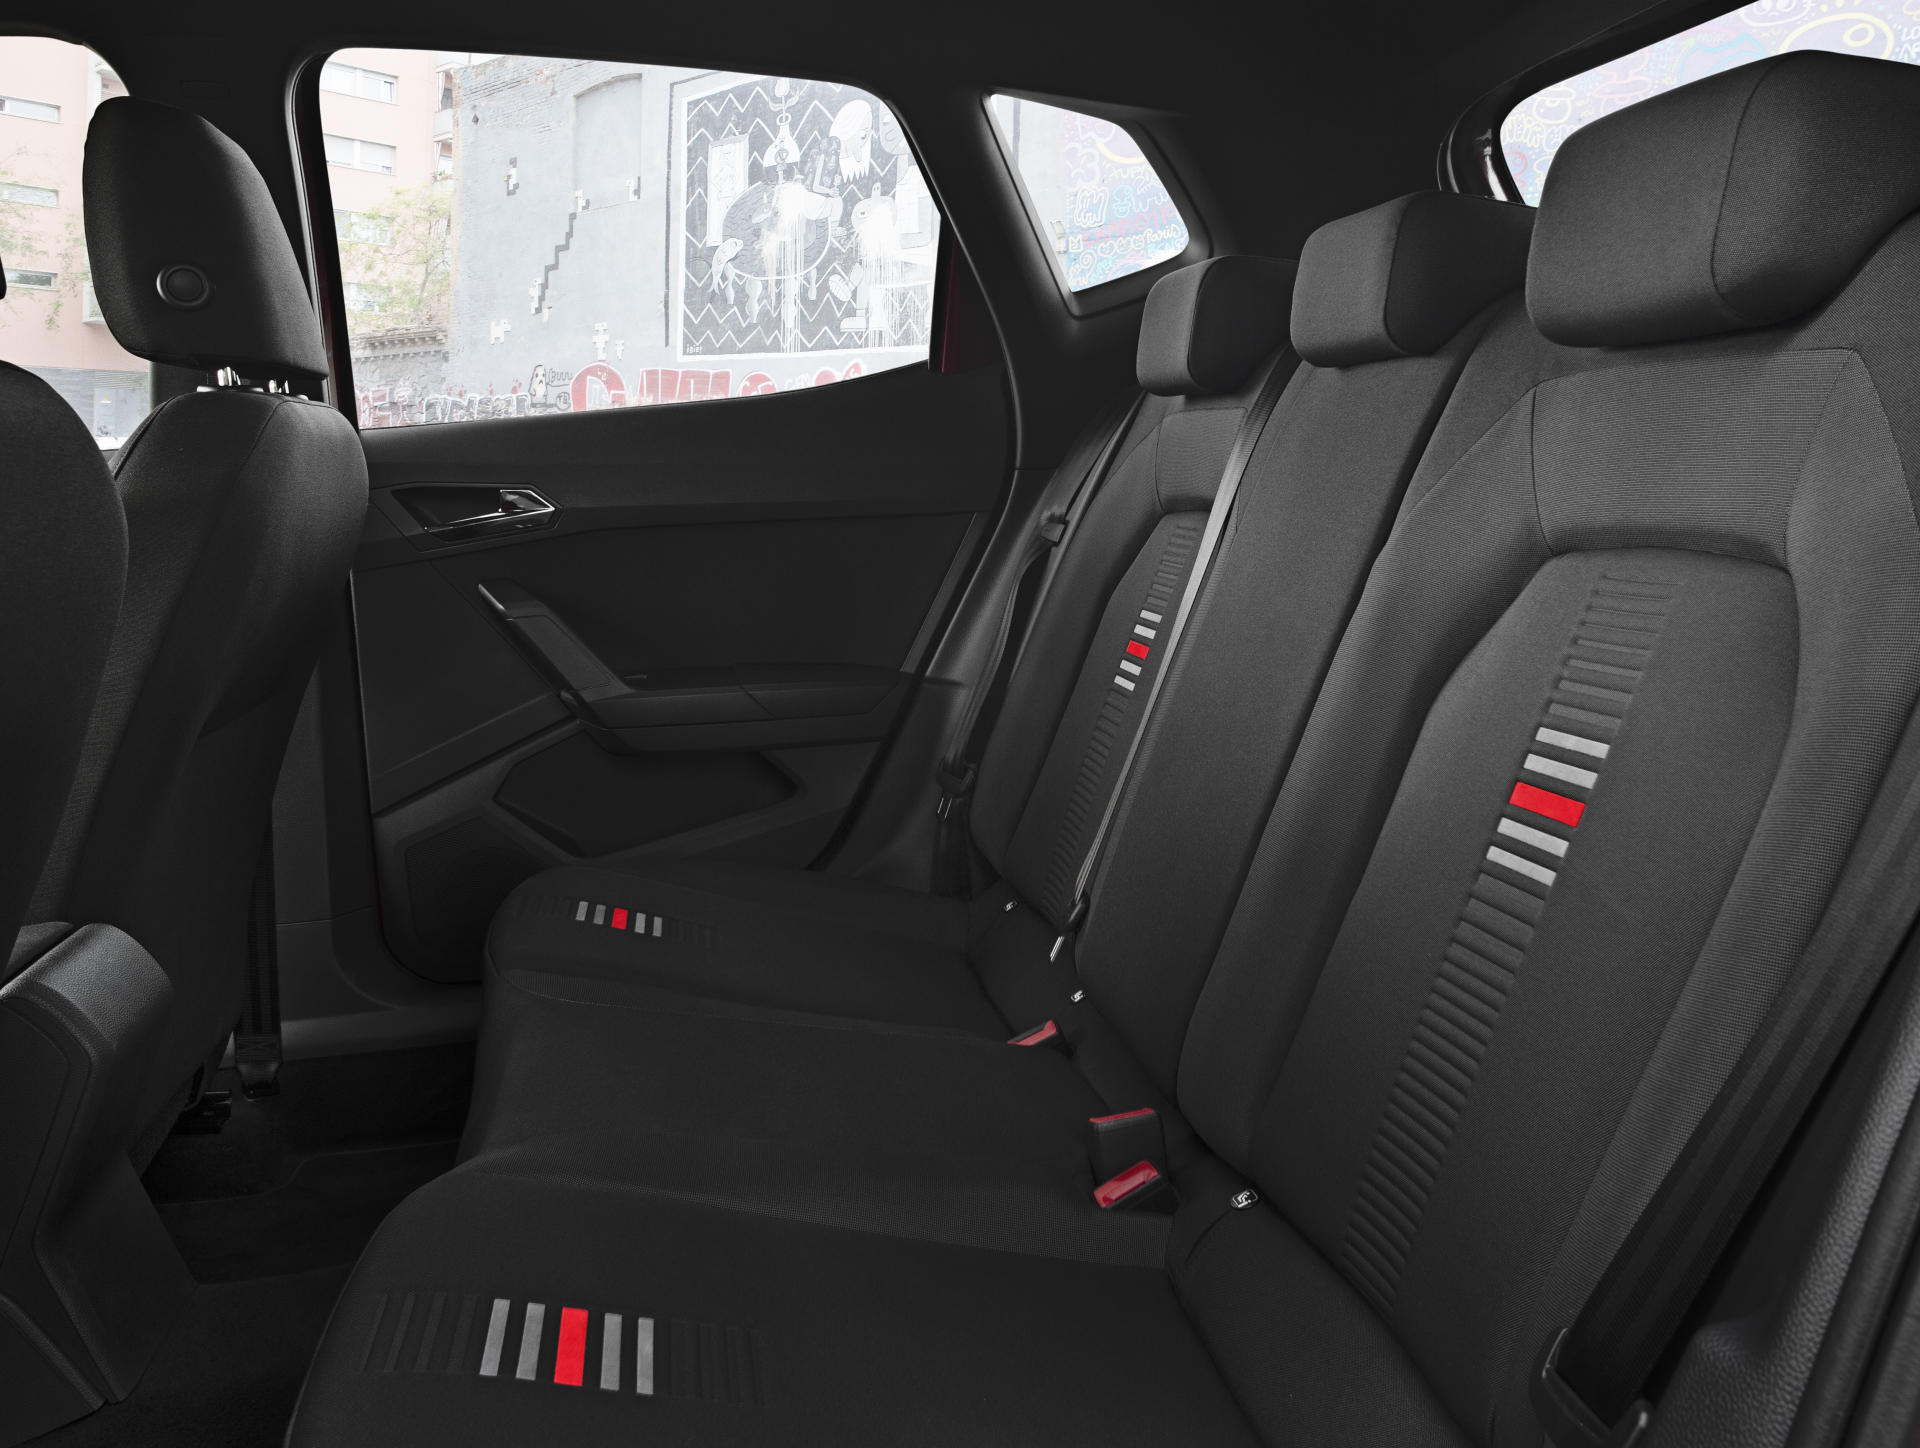 el seat arona estrena acabado fr para enfrentarse al hyundai kona y ya sabemos su precio. Black Bedroom Furniture Sets. Home Design Ideas